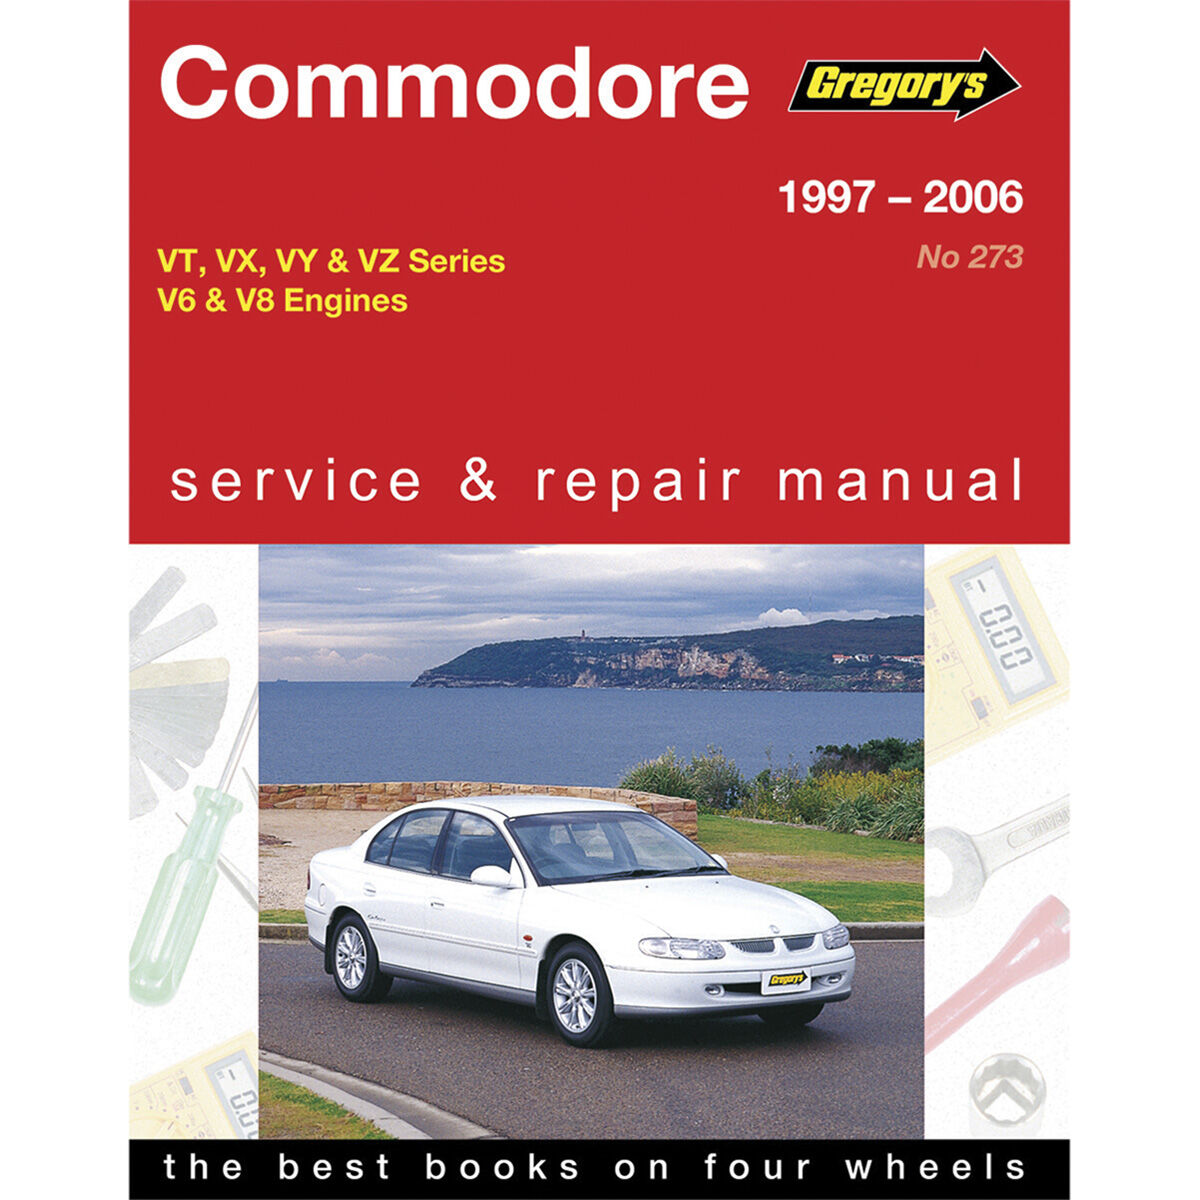 car manual for holden commodore 1997 2006 273 supercheap auto rh supercheapauto com au 1991 Caprice CL1 2011 Holden Caprice